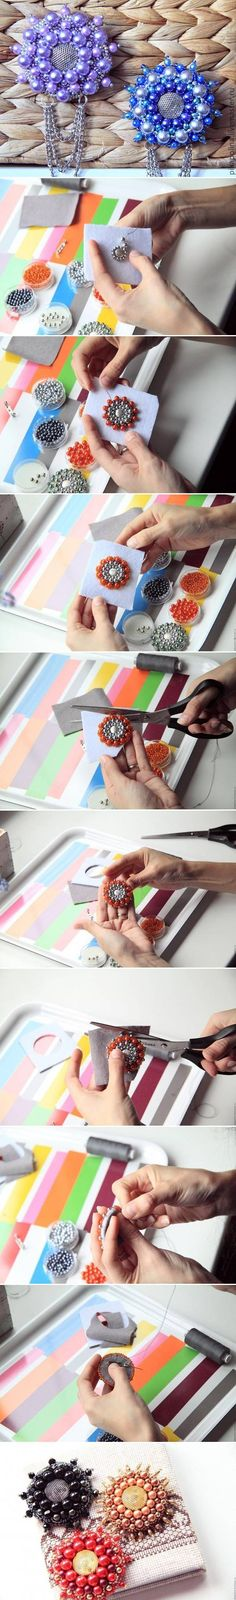 DIY Beads Flower Brooch via usefuldiy.com